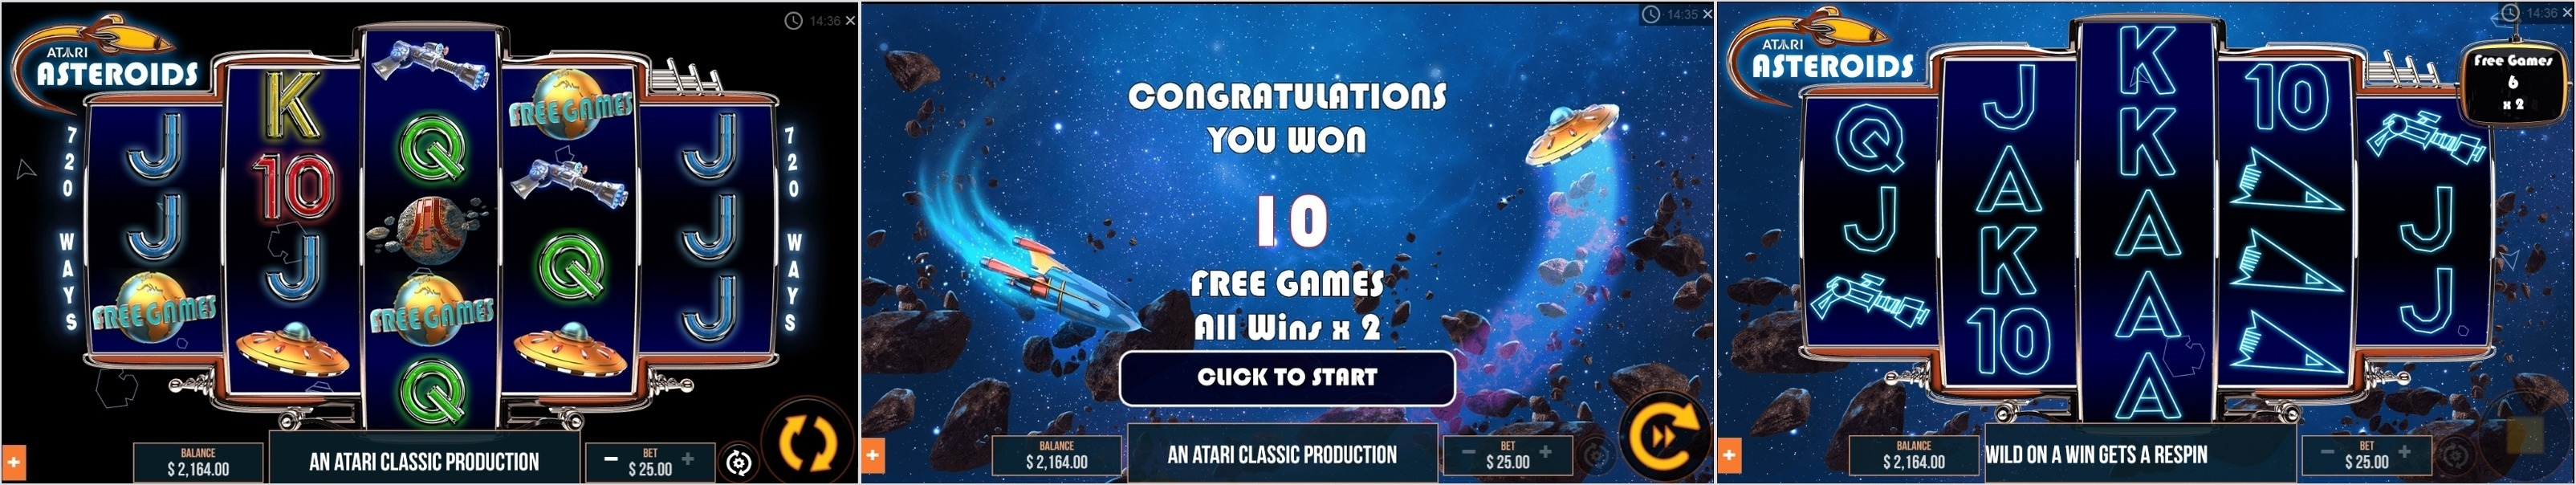 Asteroids 2 Softgamings